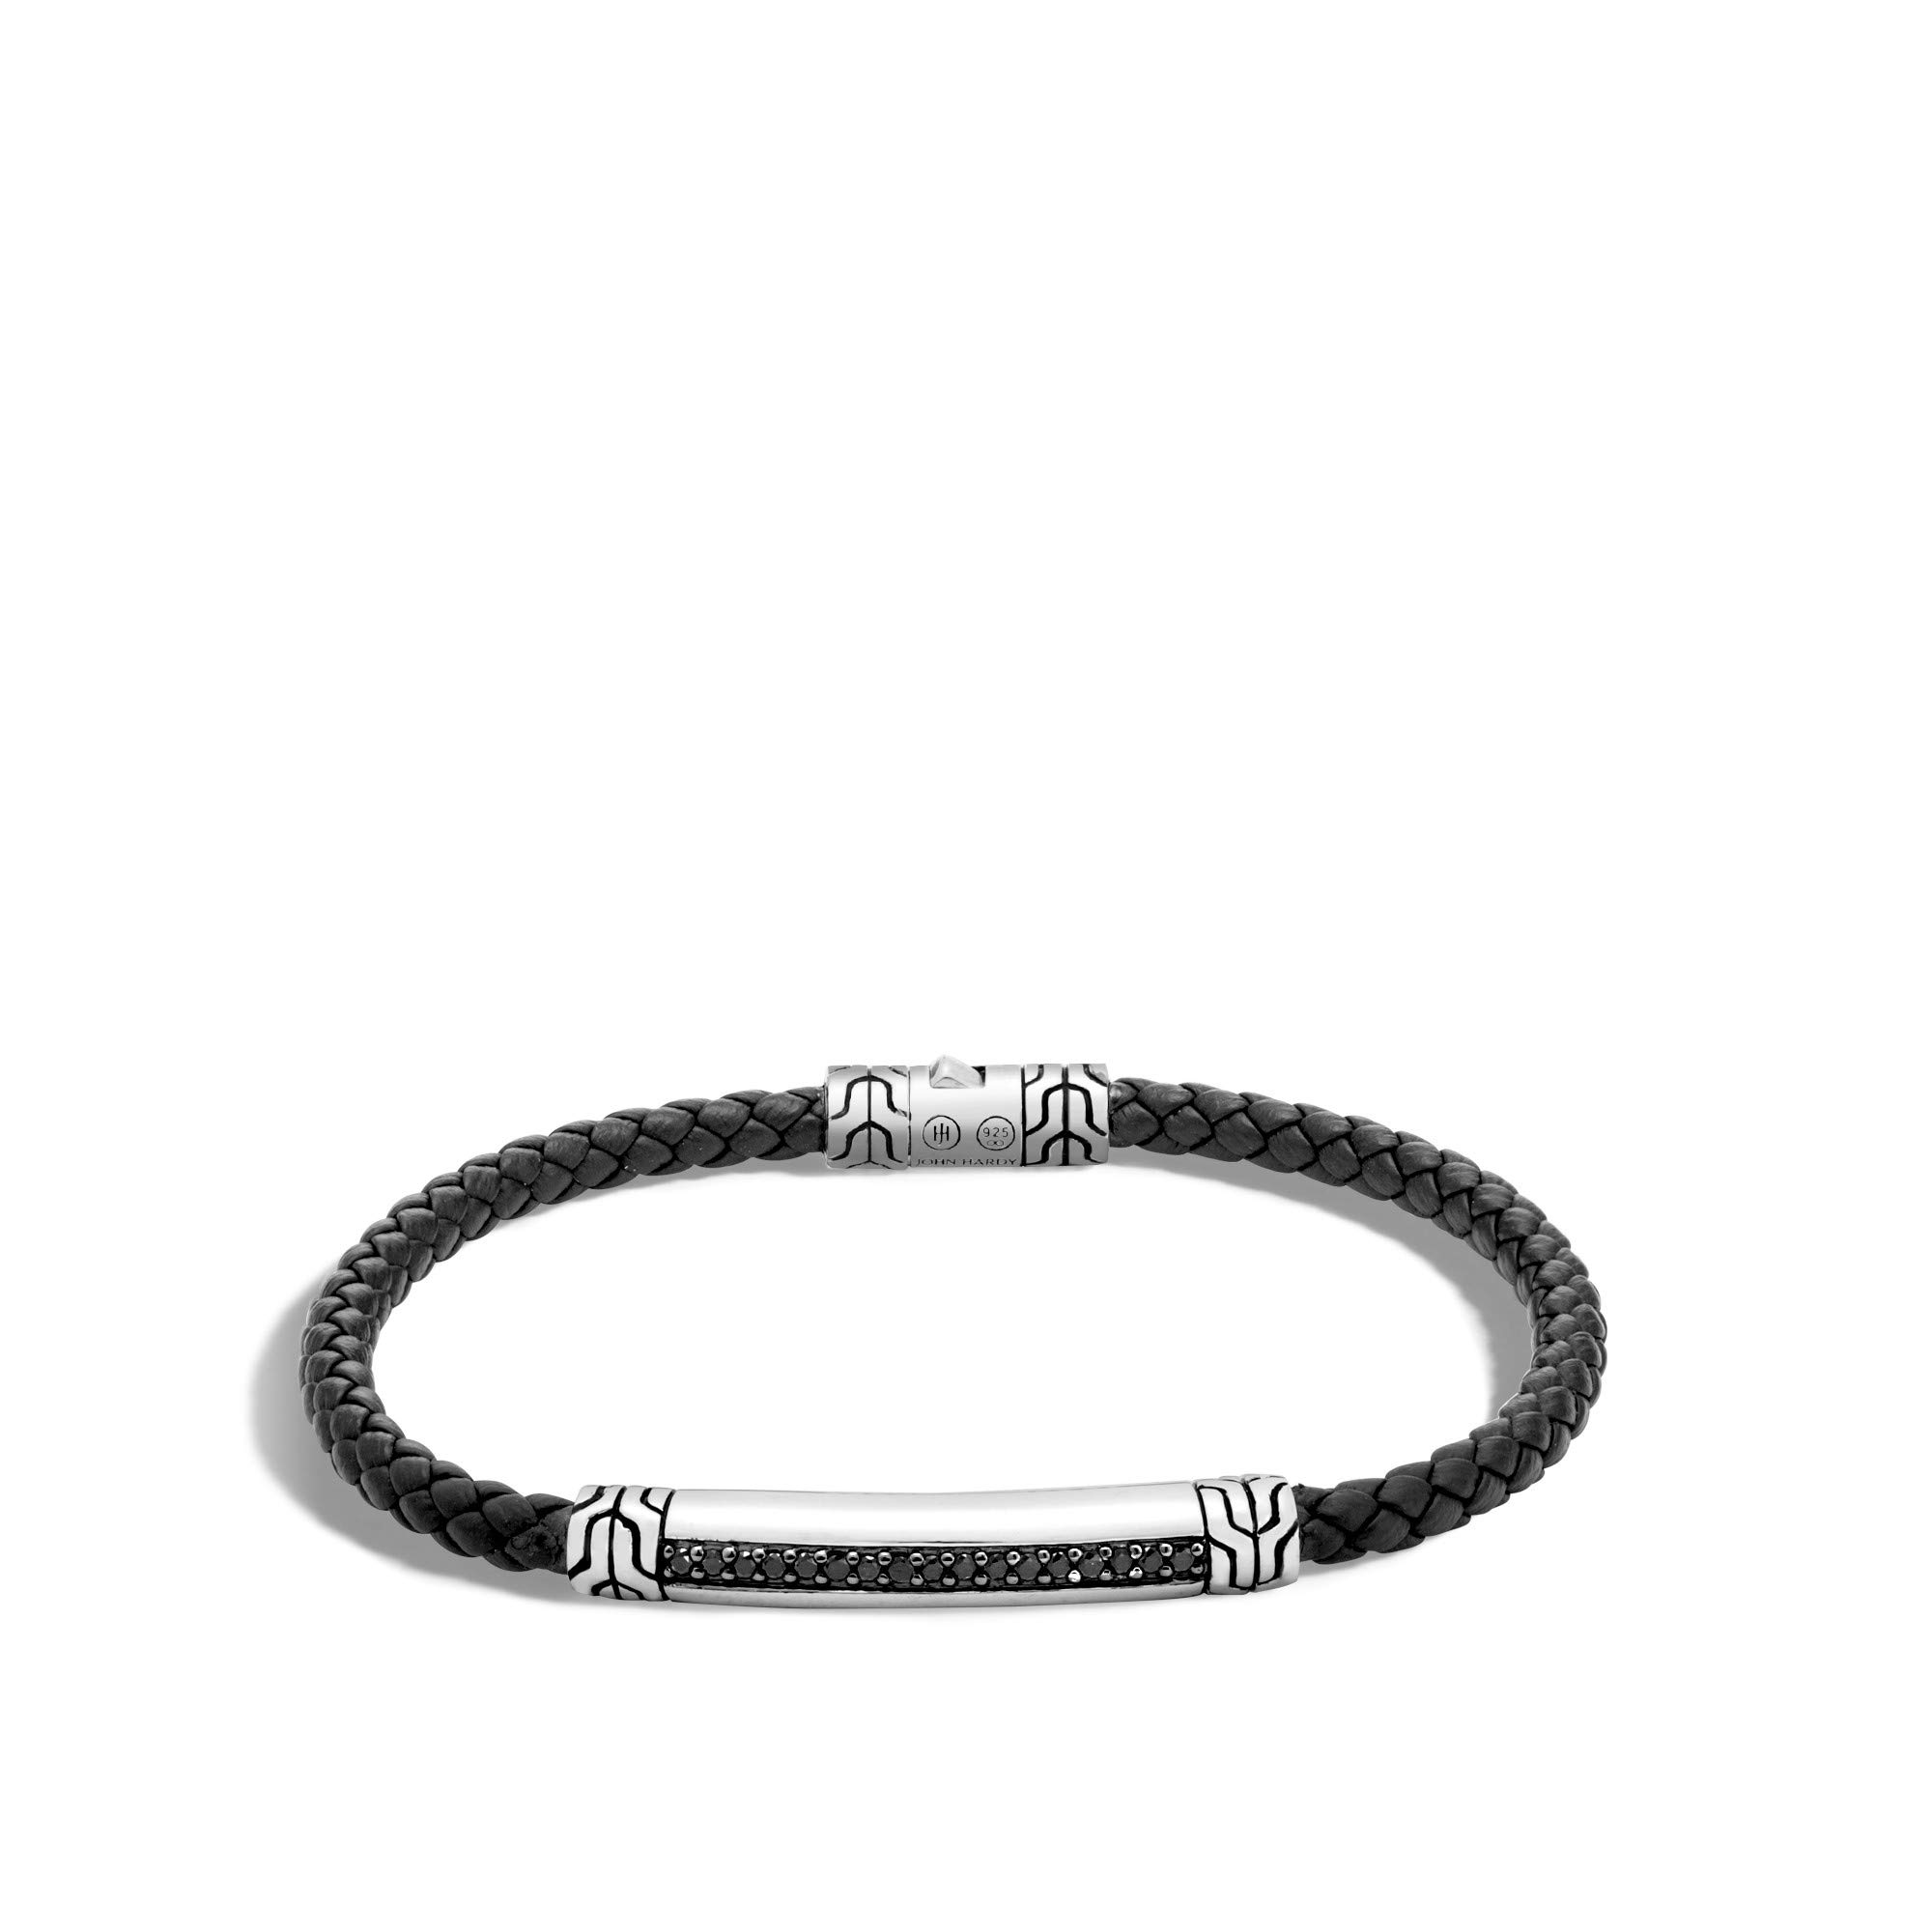 John Hardy Men's Classic Chain Silver Bracelet on 4mm Black Woven Leather Cord with Pusher Clasp with Black Sapphire, Size M